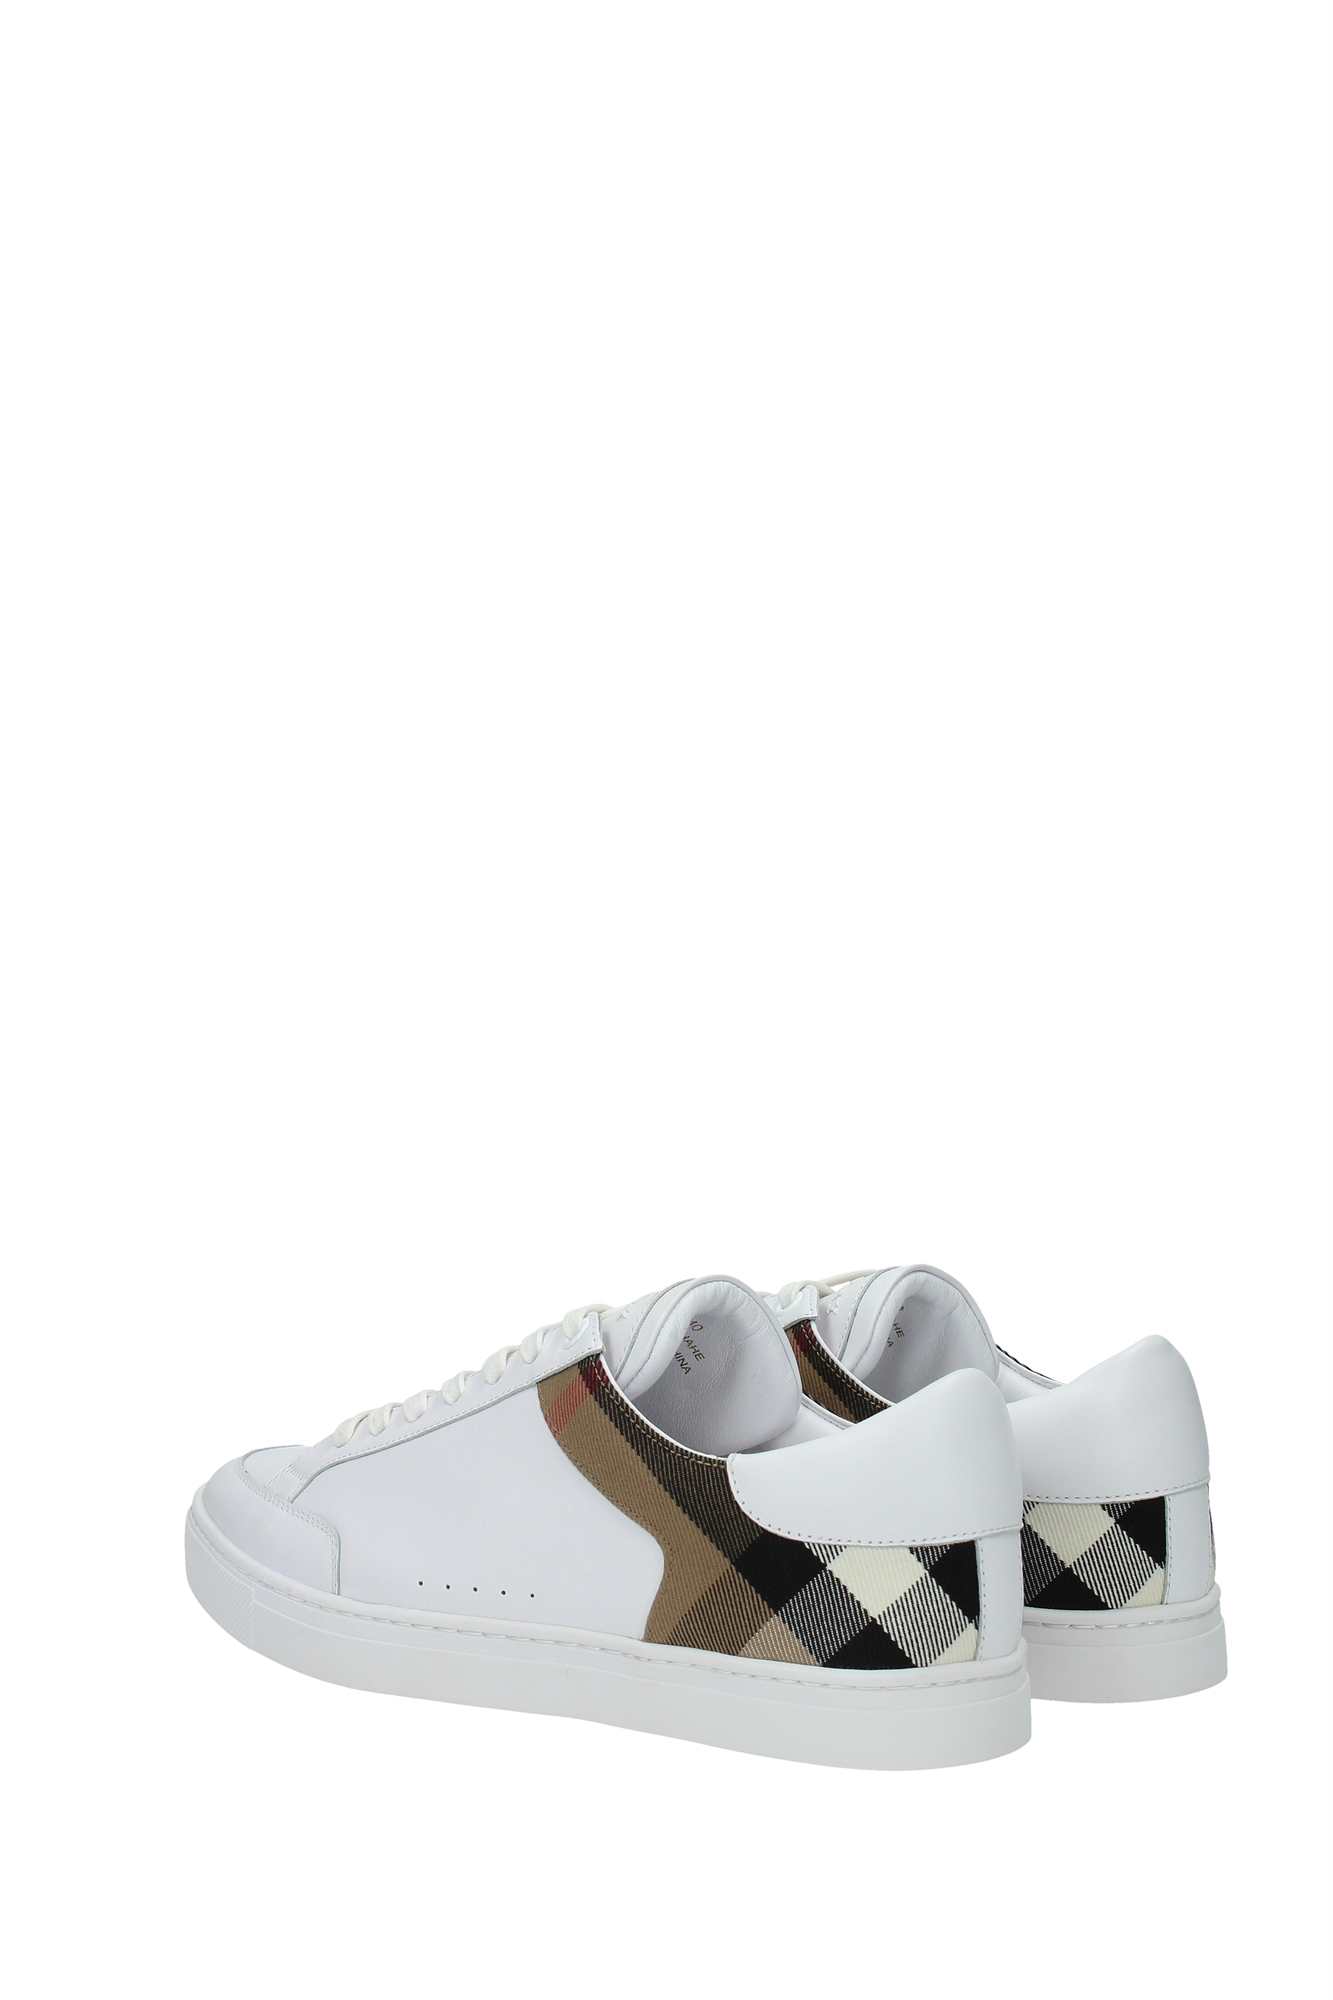 Burberry Sneakers Uomo